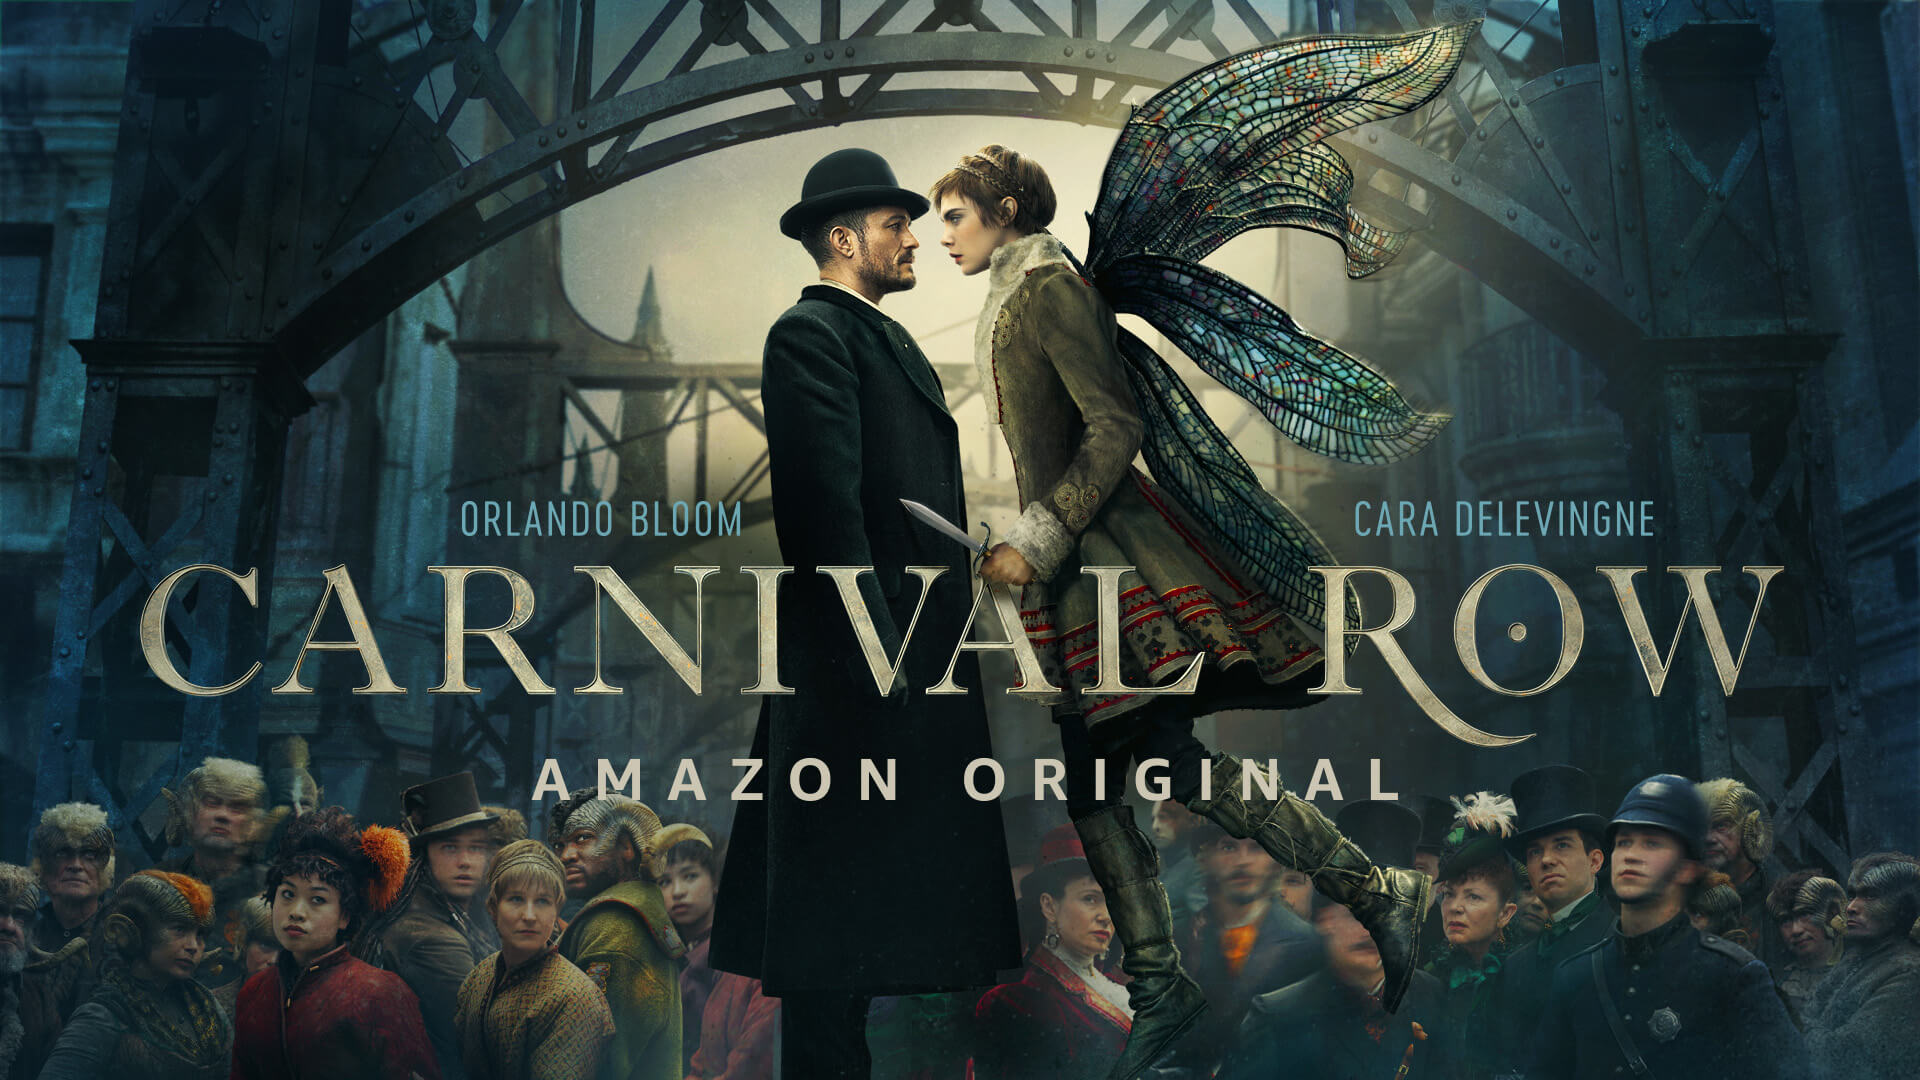 TV-serien Carnival Row. Foto: Amazon